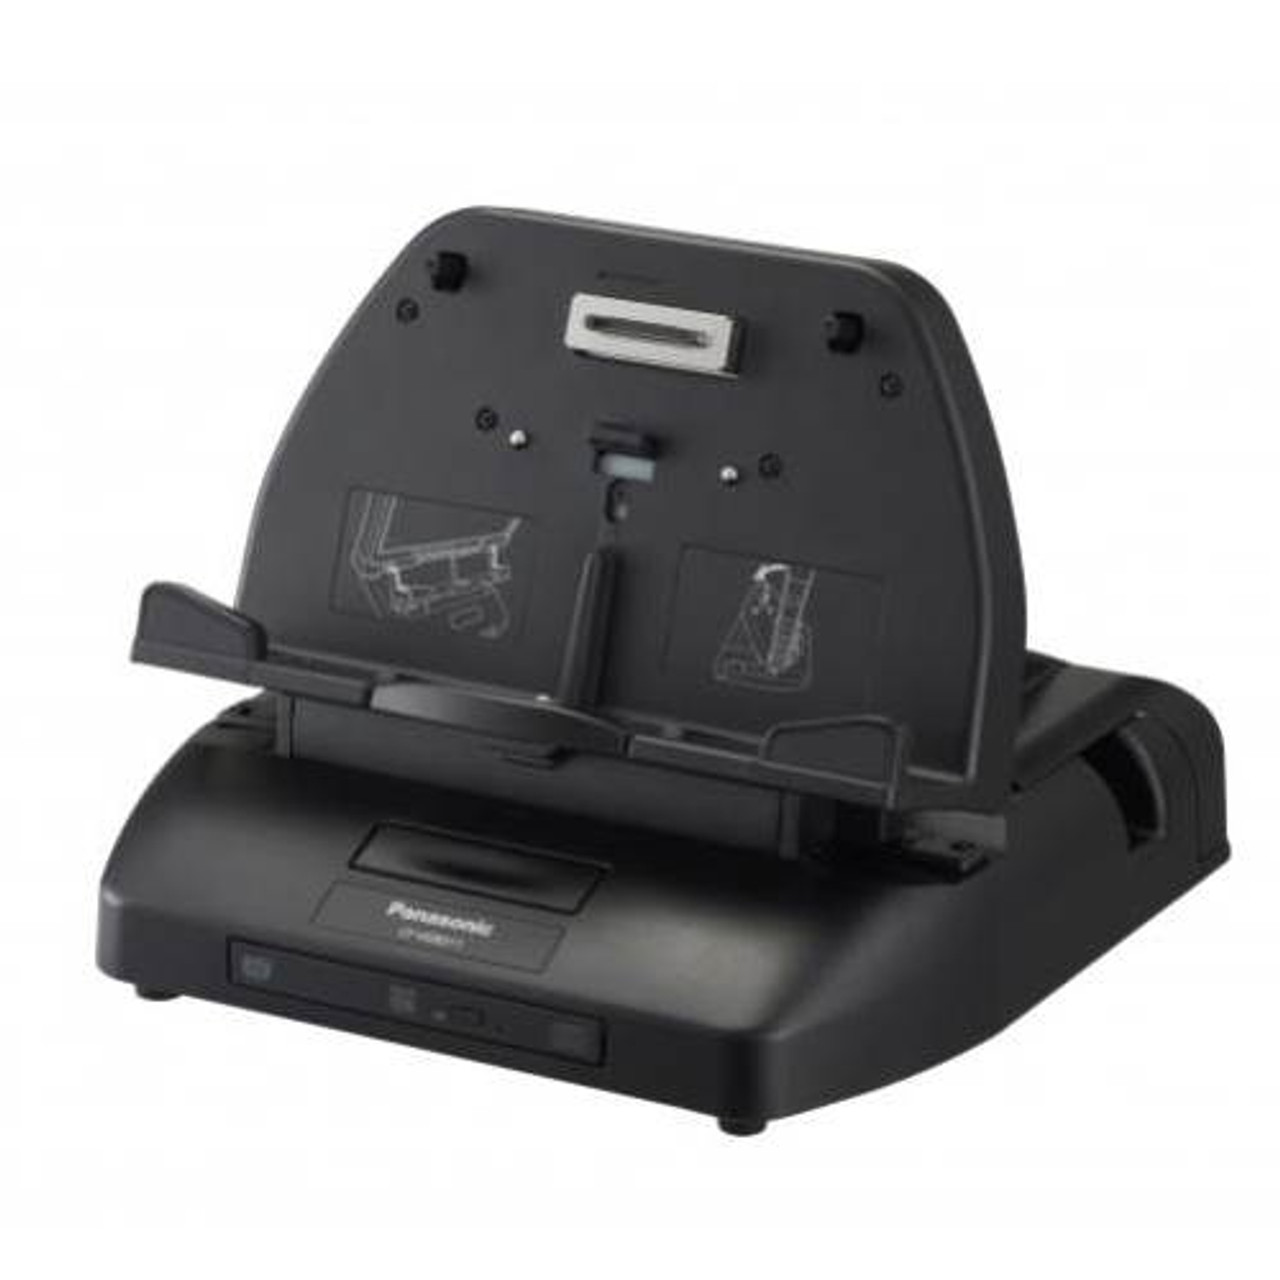 Image for Panasonic Docking Cradle with DVD Drive for CF-D1 CX Computer Superstore